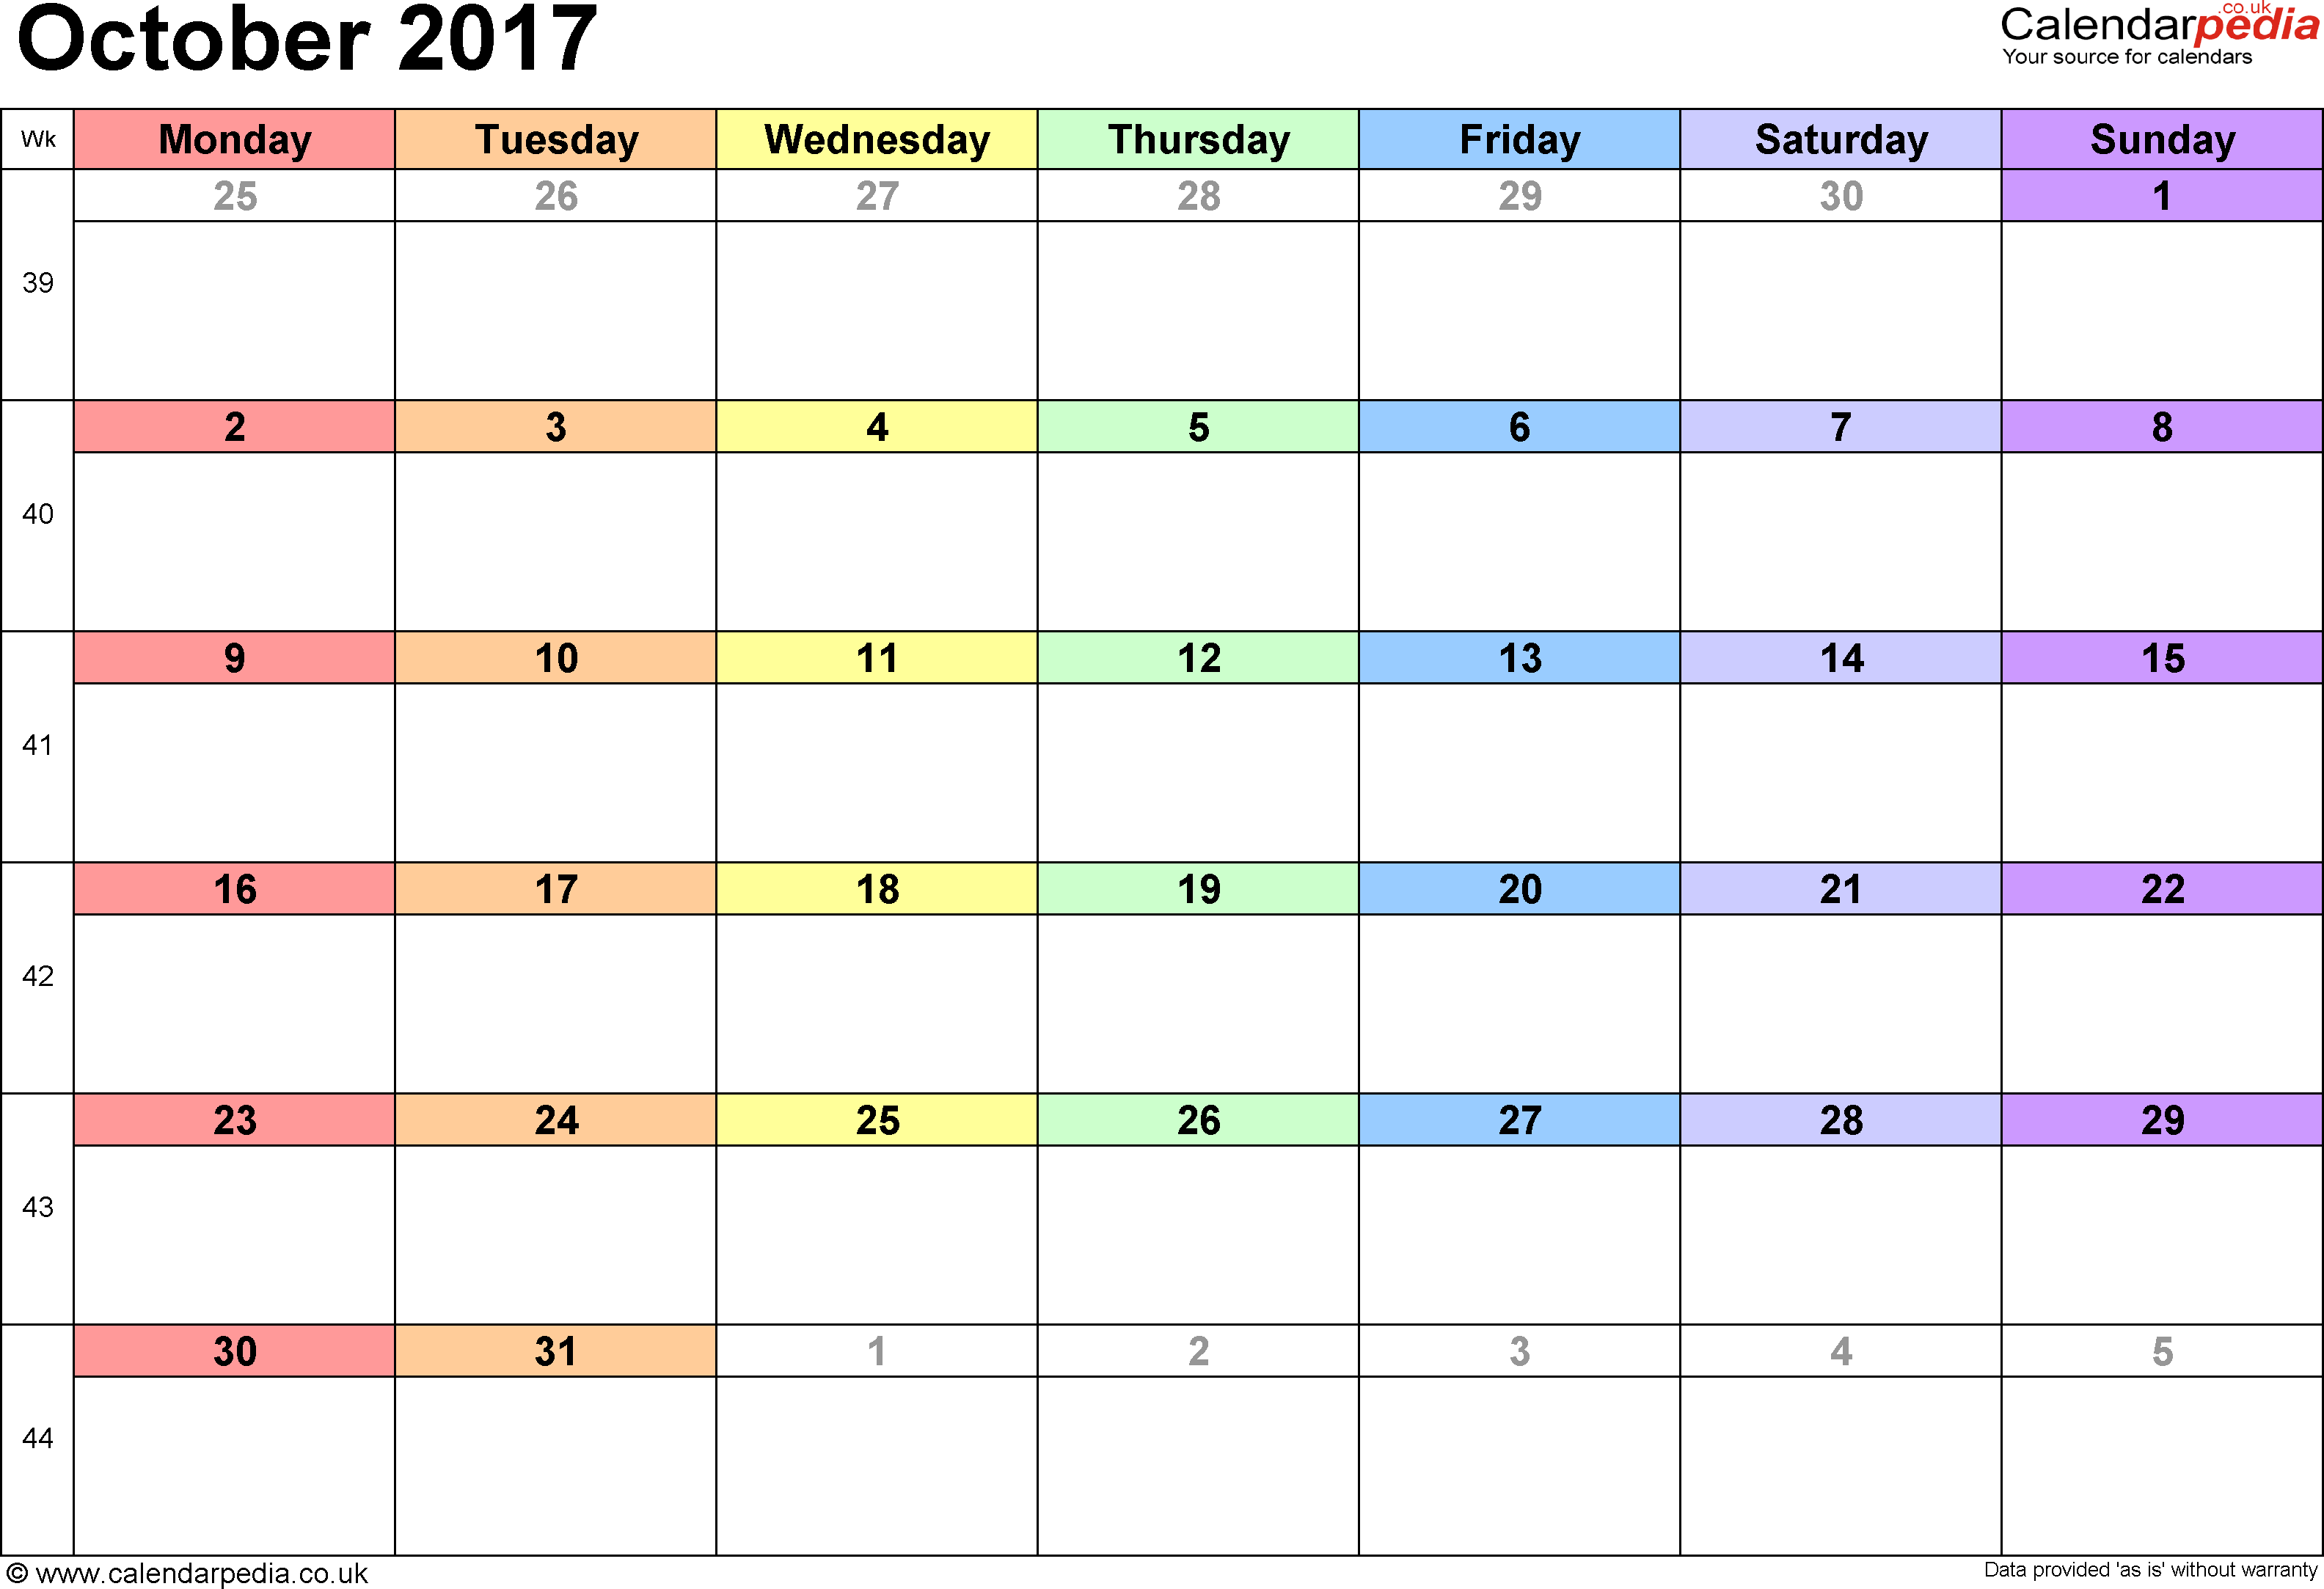 Calendar October 2017 UK, Bank Holidays, Excel/PDF/Word Templates